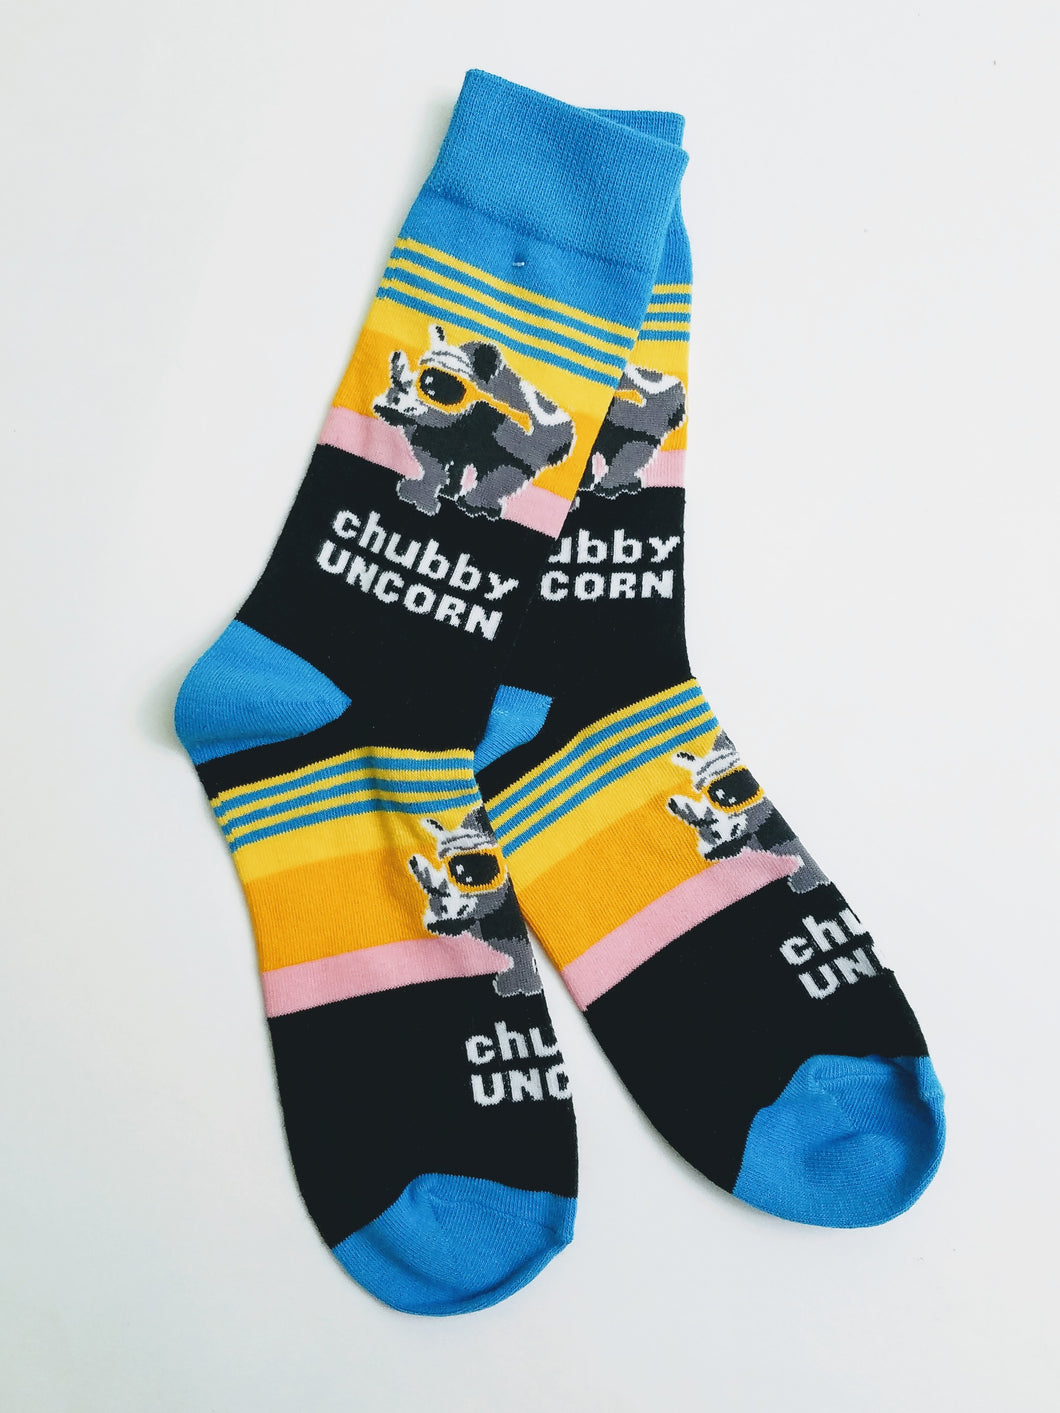 Chubby Unicorn Crew Socks